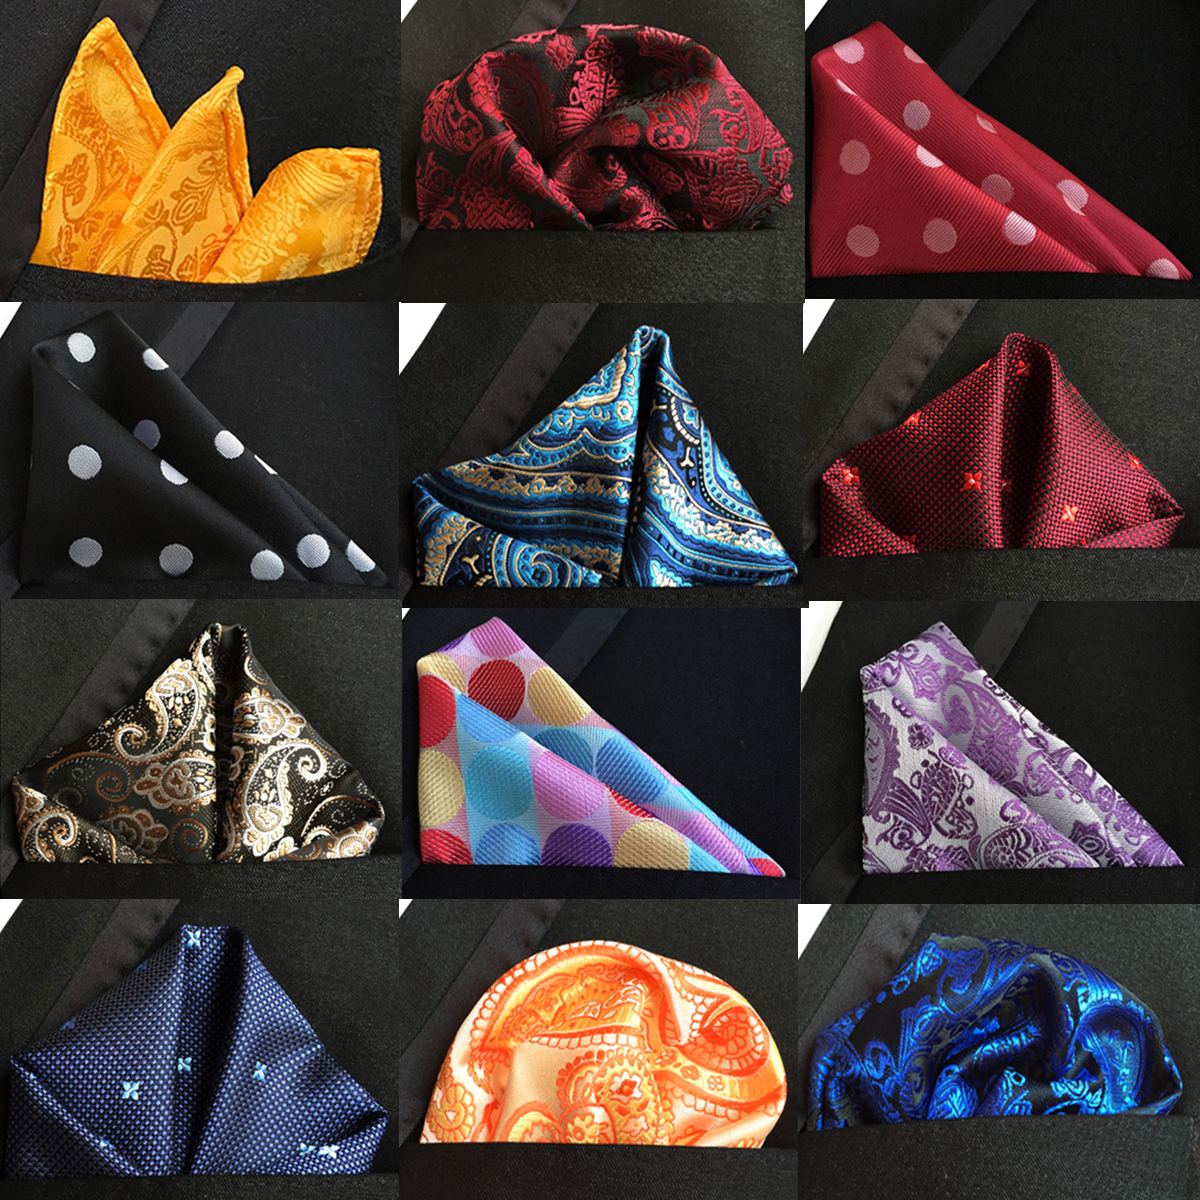 Fashion 25cm*25cm Silk Pocket Square Mens Polka Dot Paisley Hankdkerchief For Men Business Floral Chest Costume Hanky Accessory